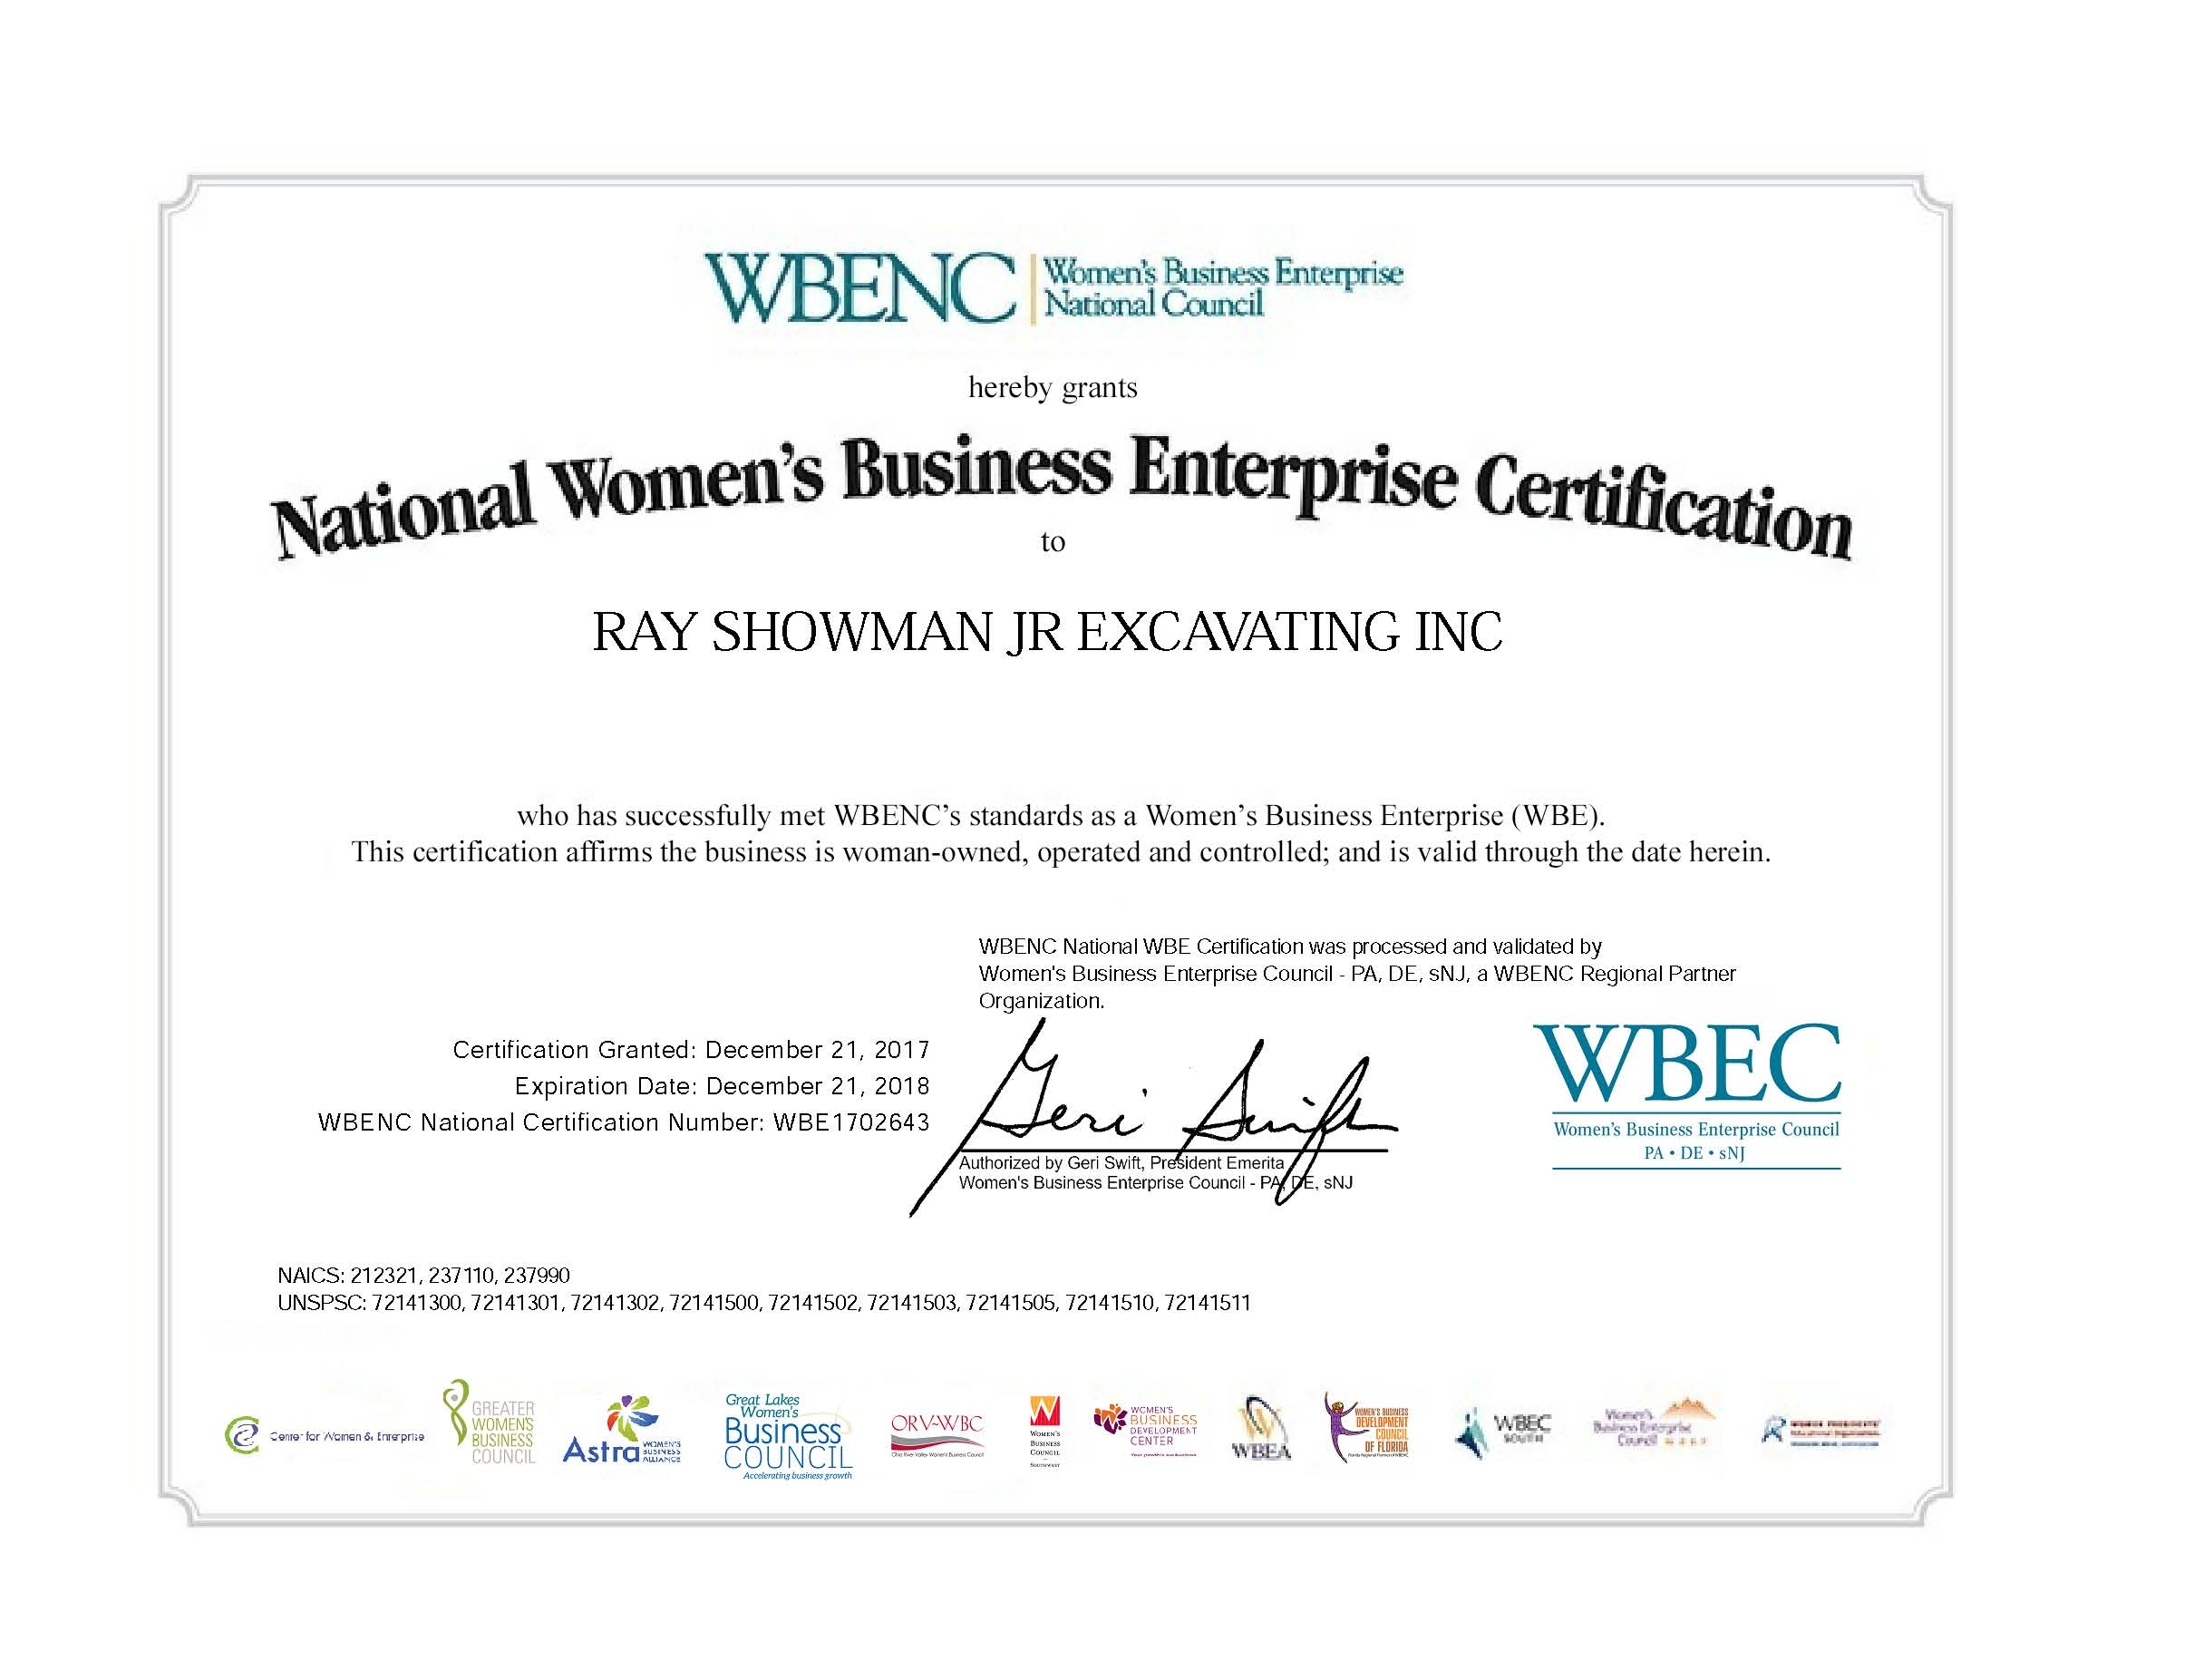 WBENC - WOSB Certificate